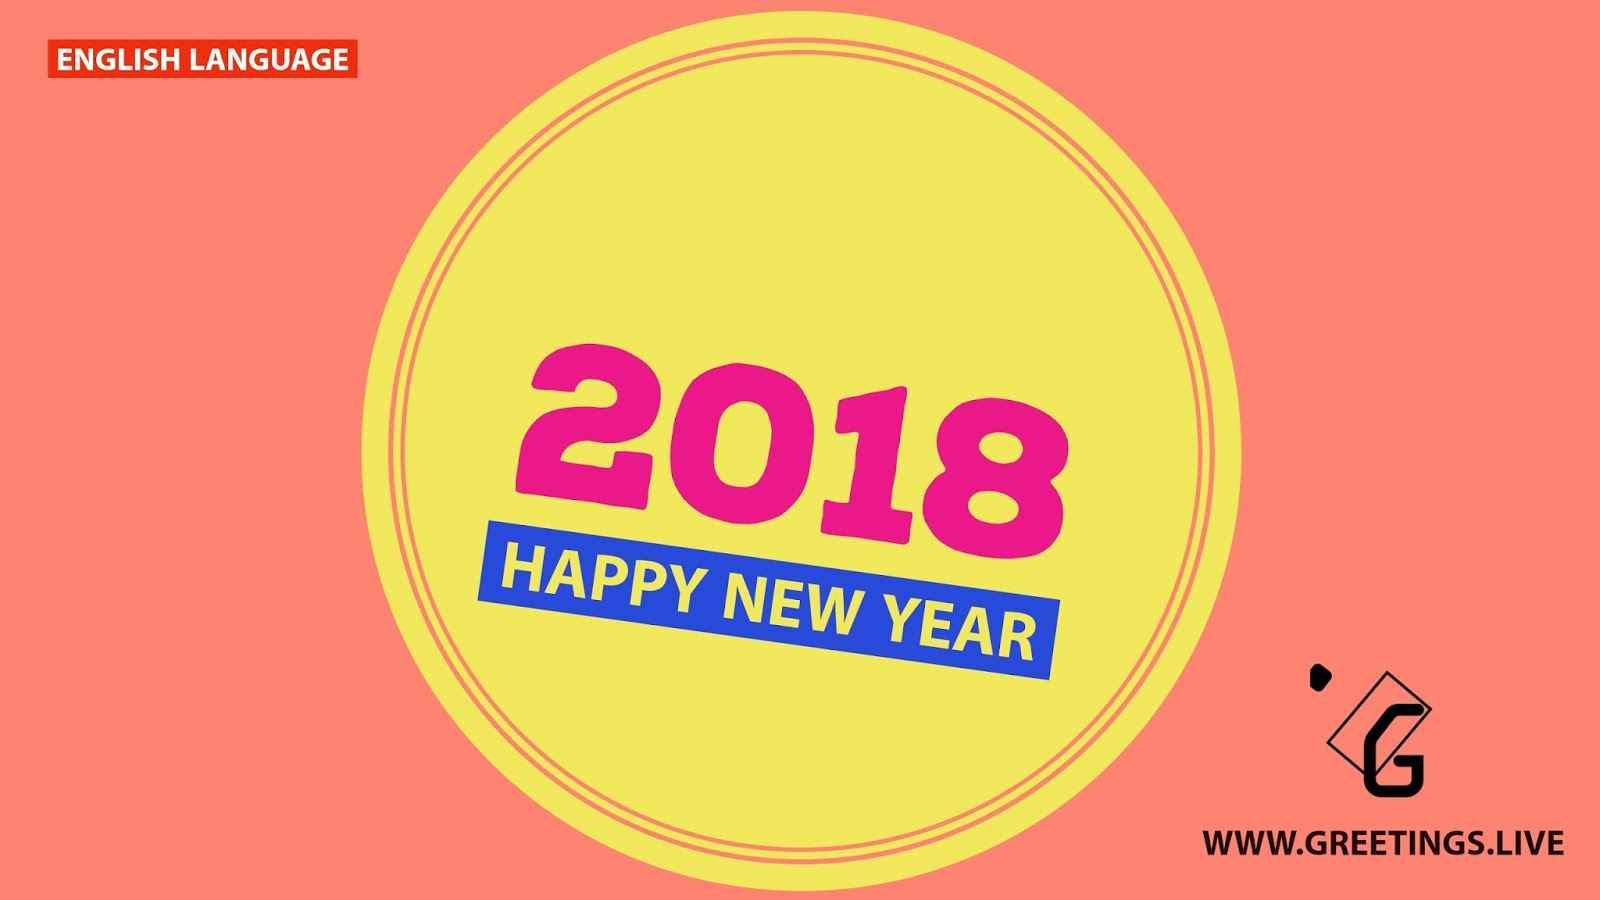 2018 New Year Wishes Greetings Latest New Year Greetings In English